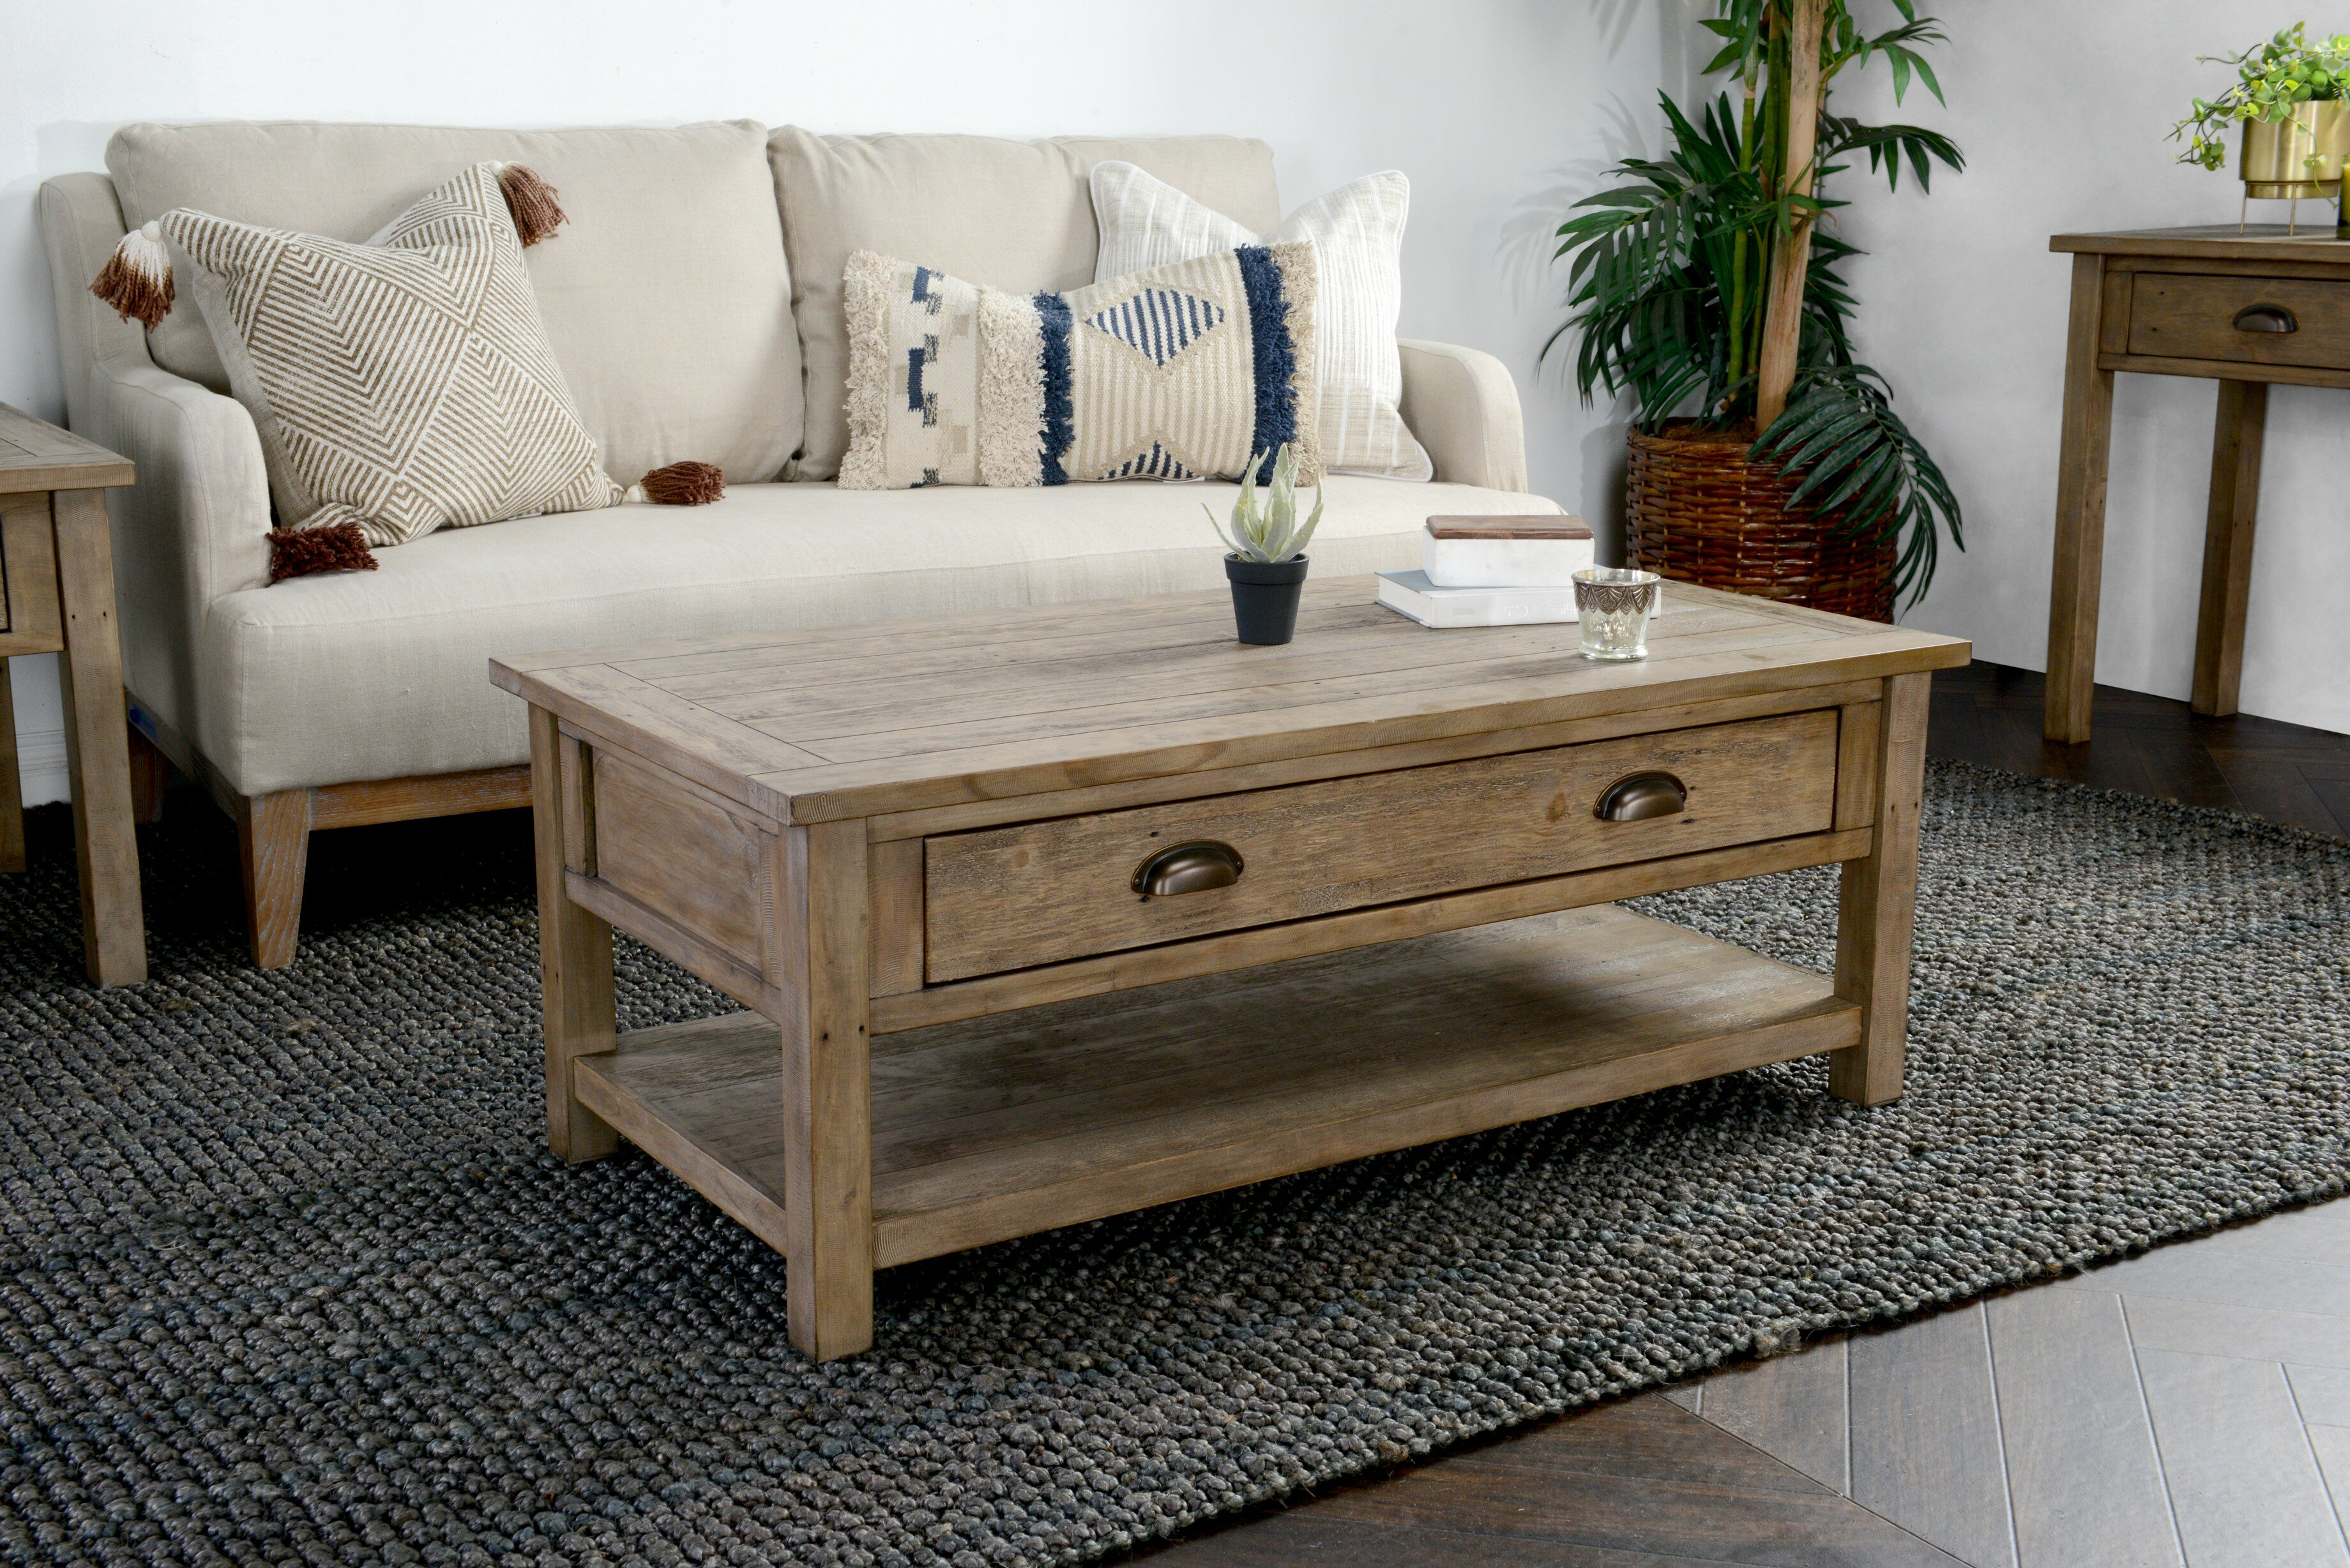 Highland dunes enfield driftwood coffee table with storage wayfair